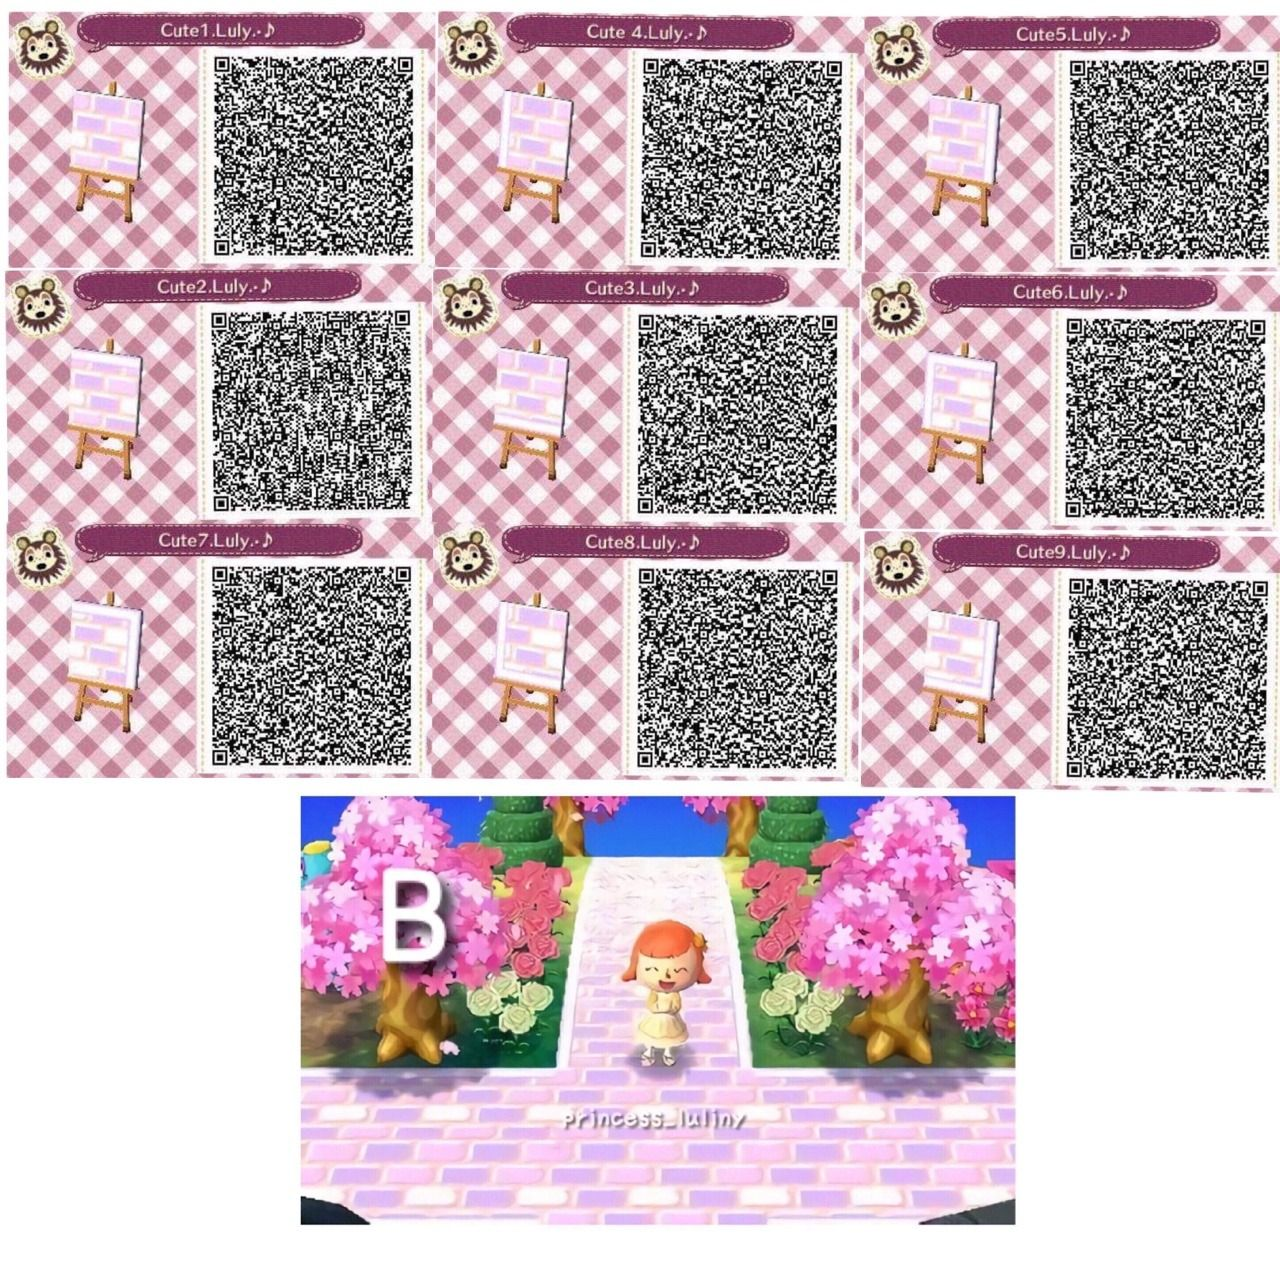 Pin By Lex On Ac Nl Animal Crossing Qr Codes Clothes